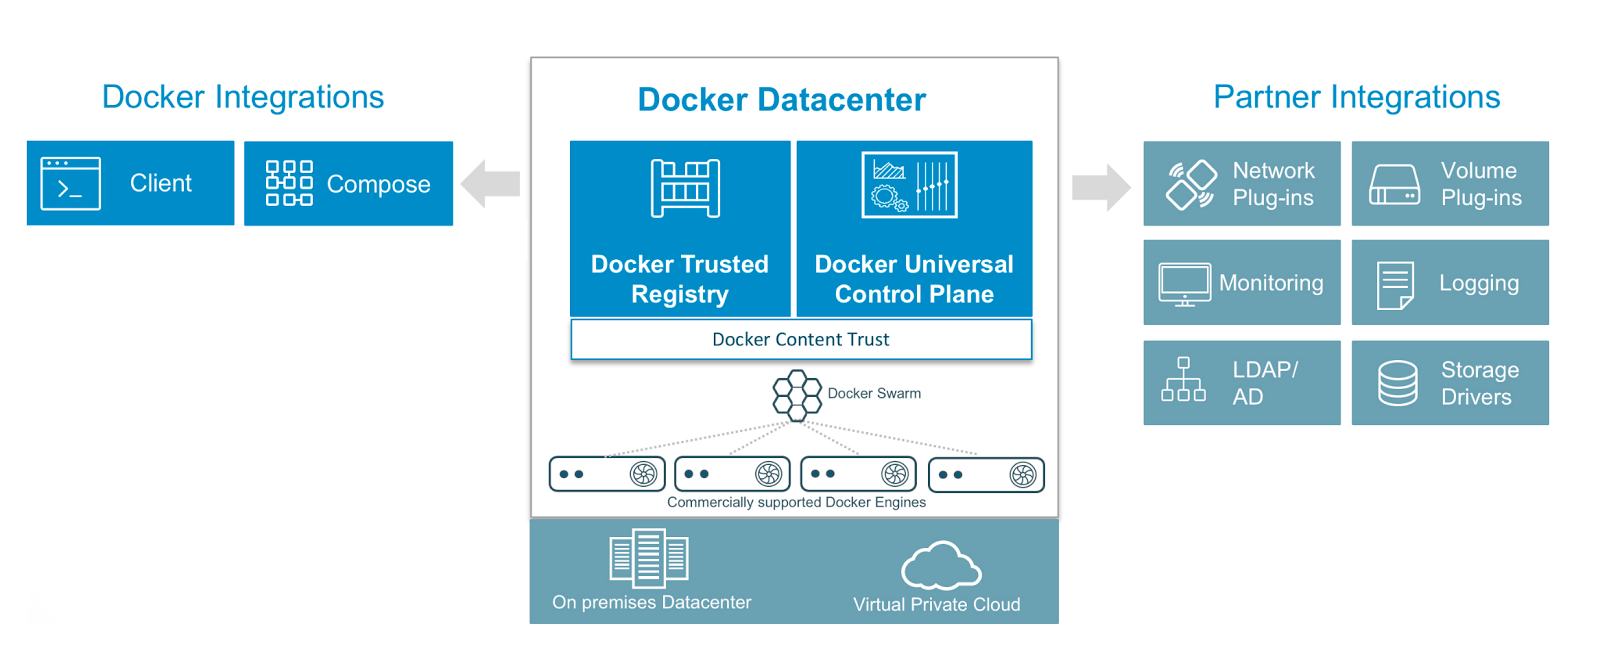 Docker Datacenter logical schema